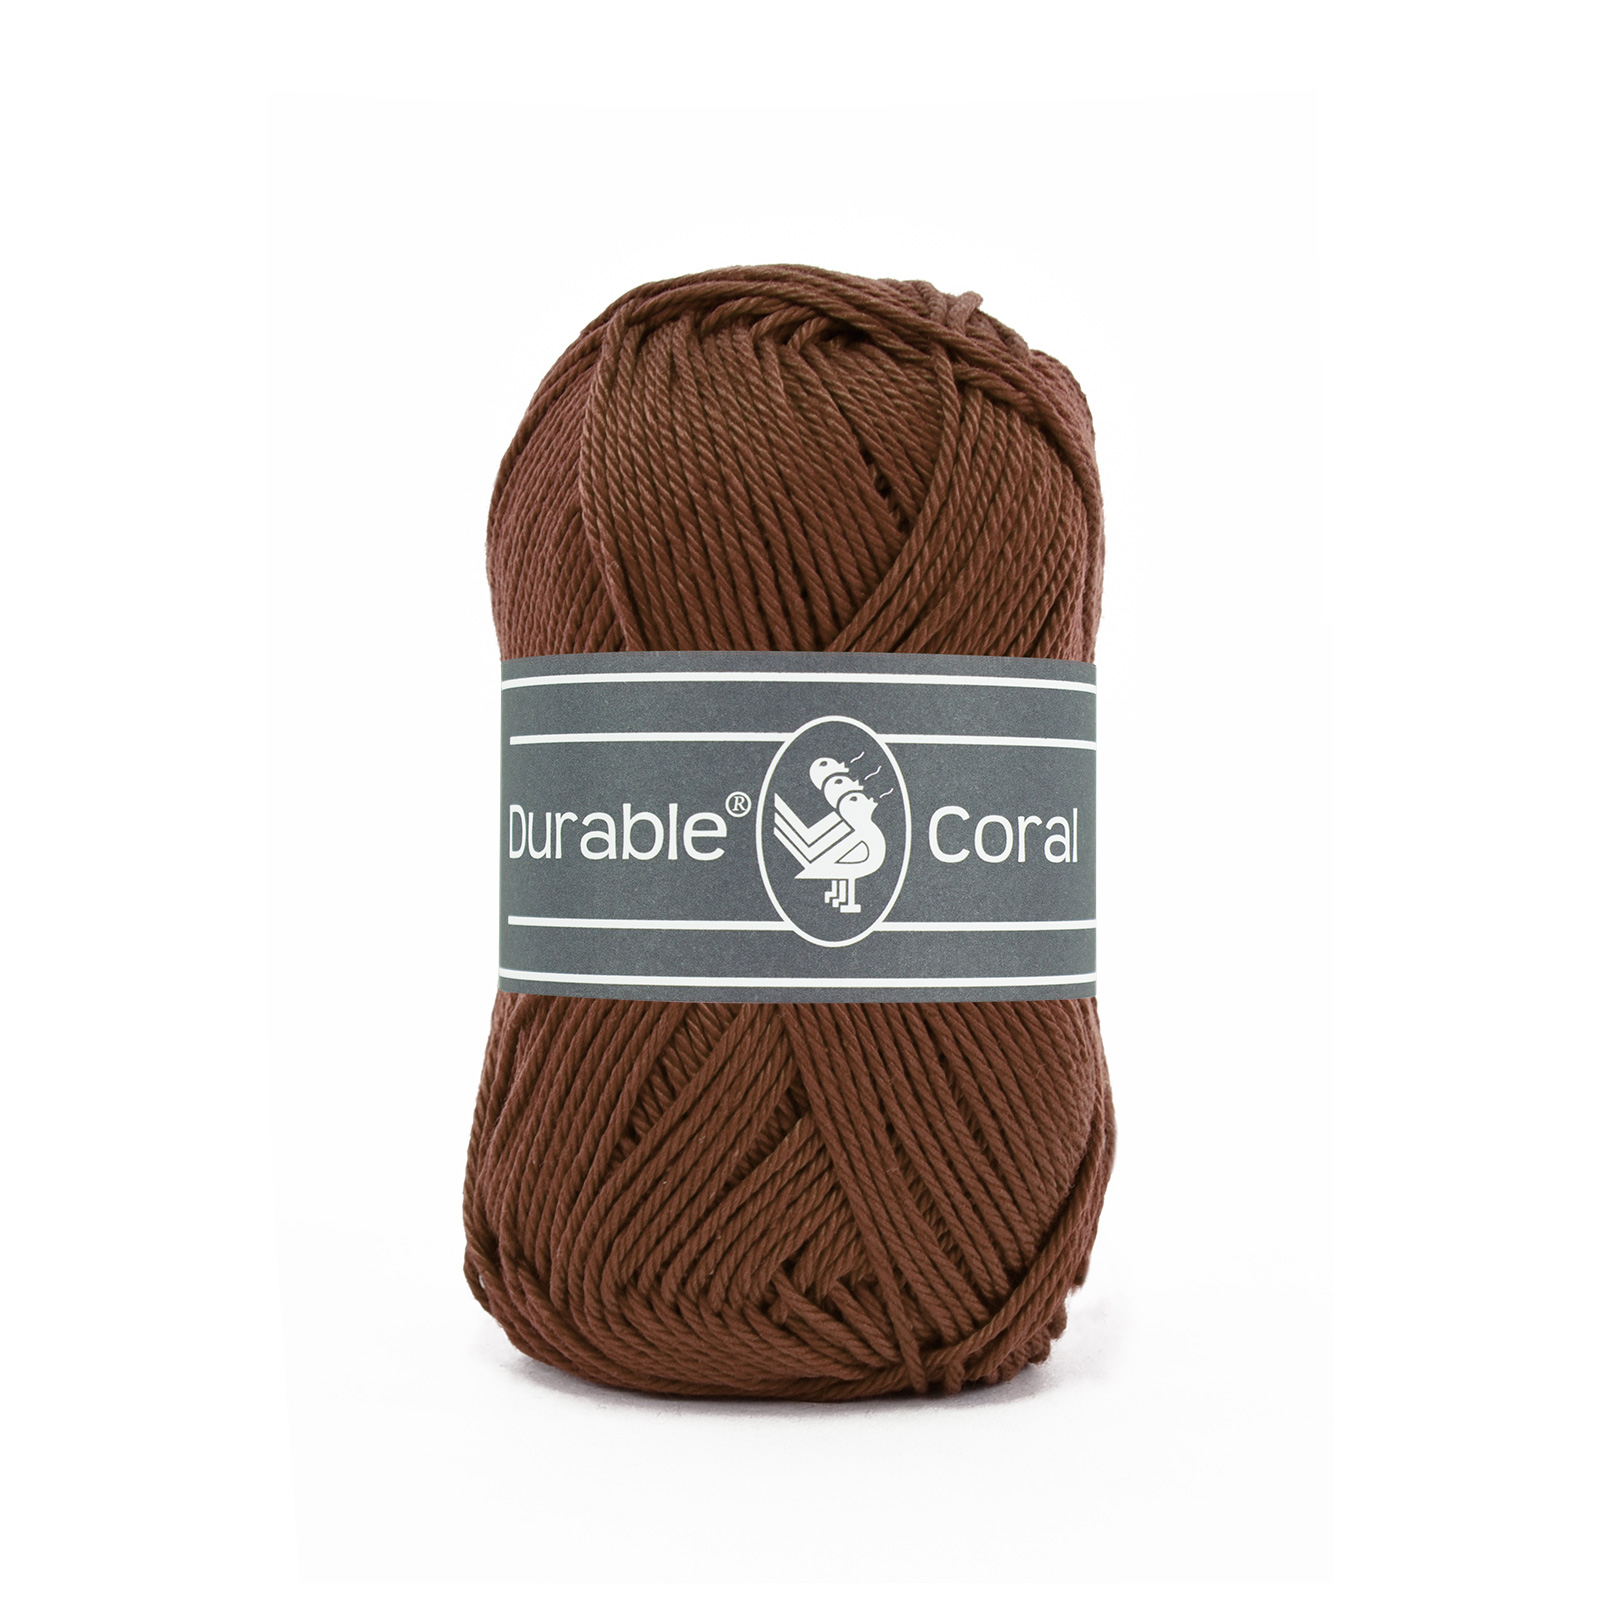 Durable Coral – 385 Coffee